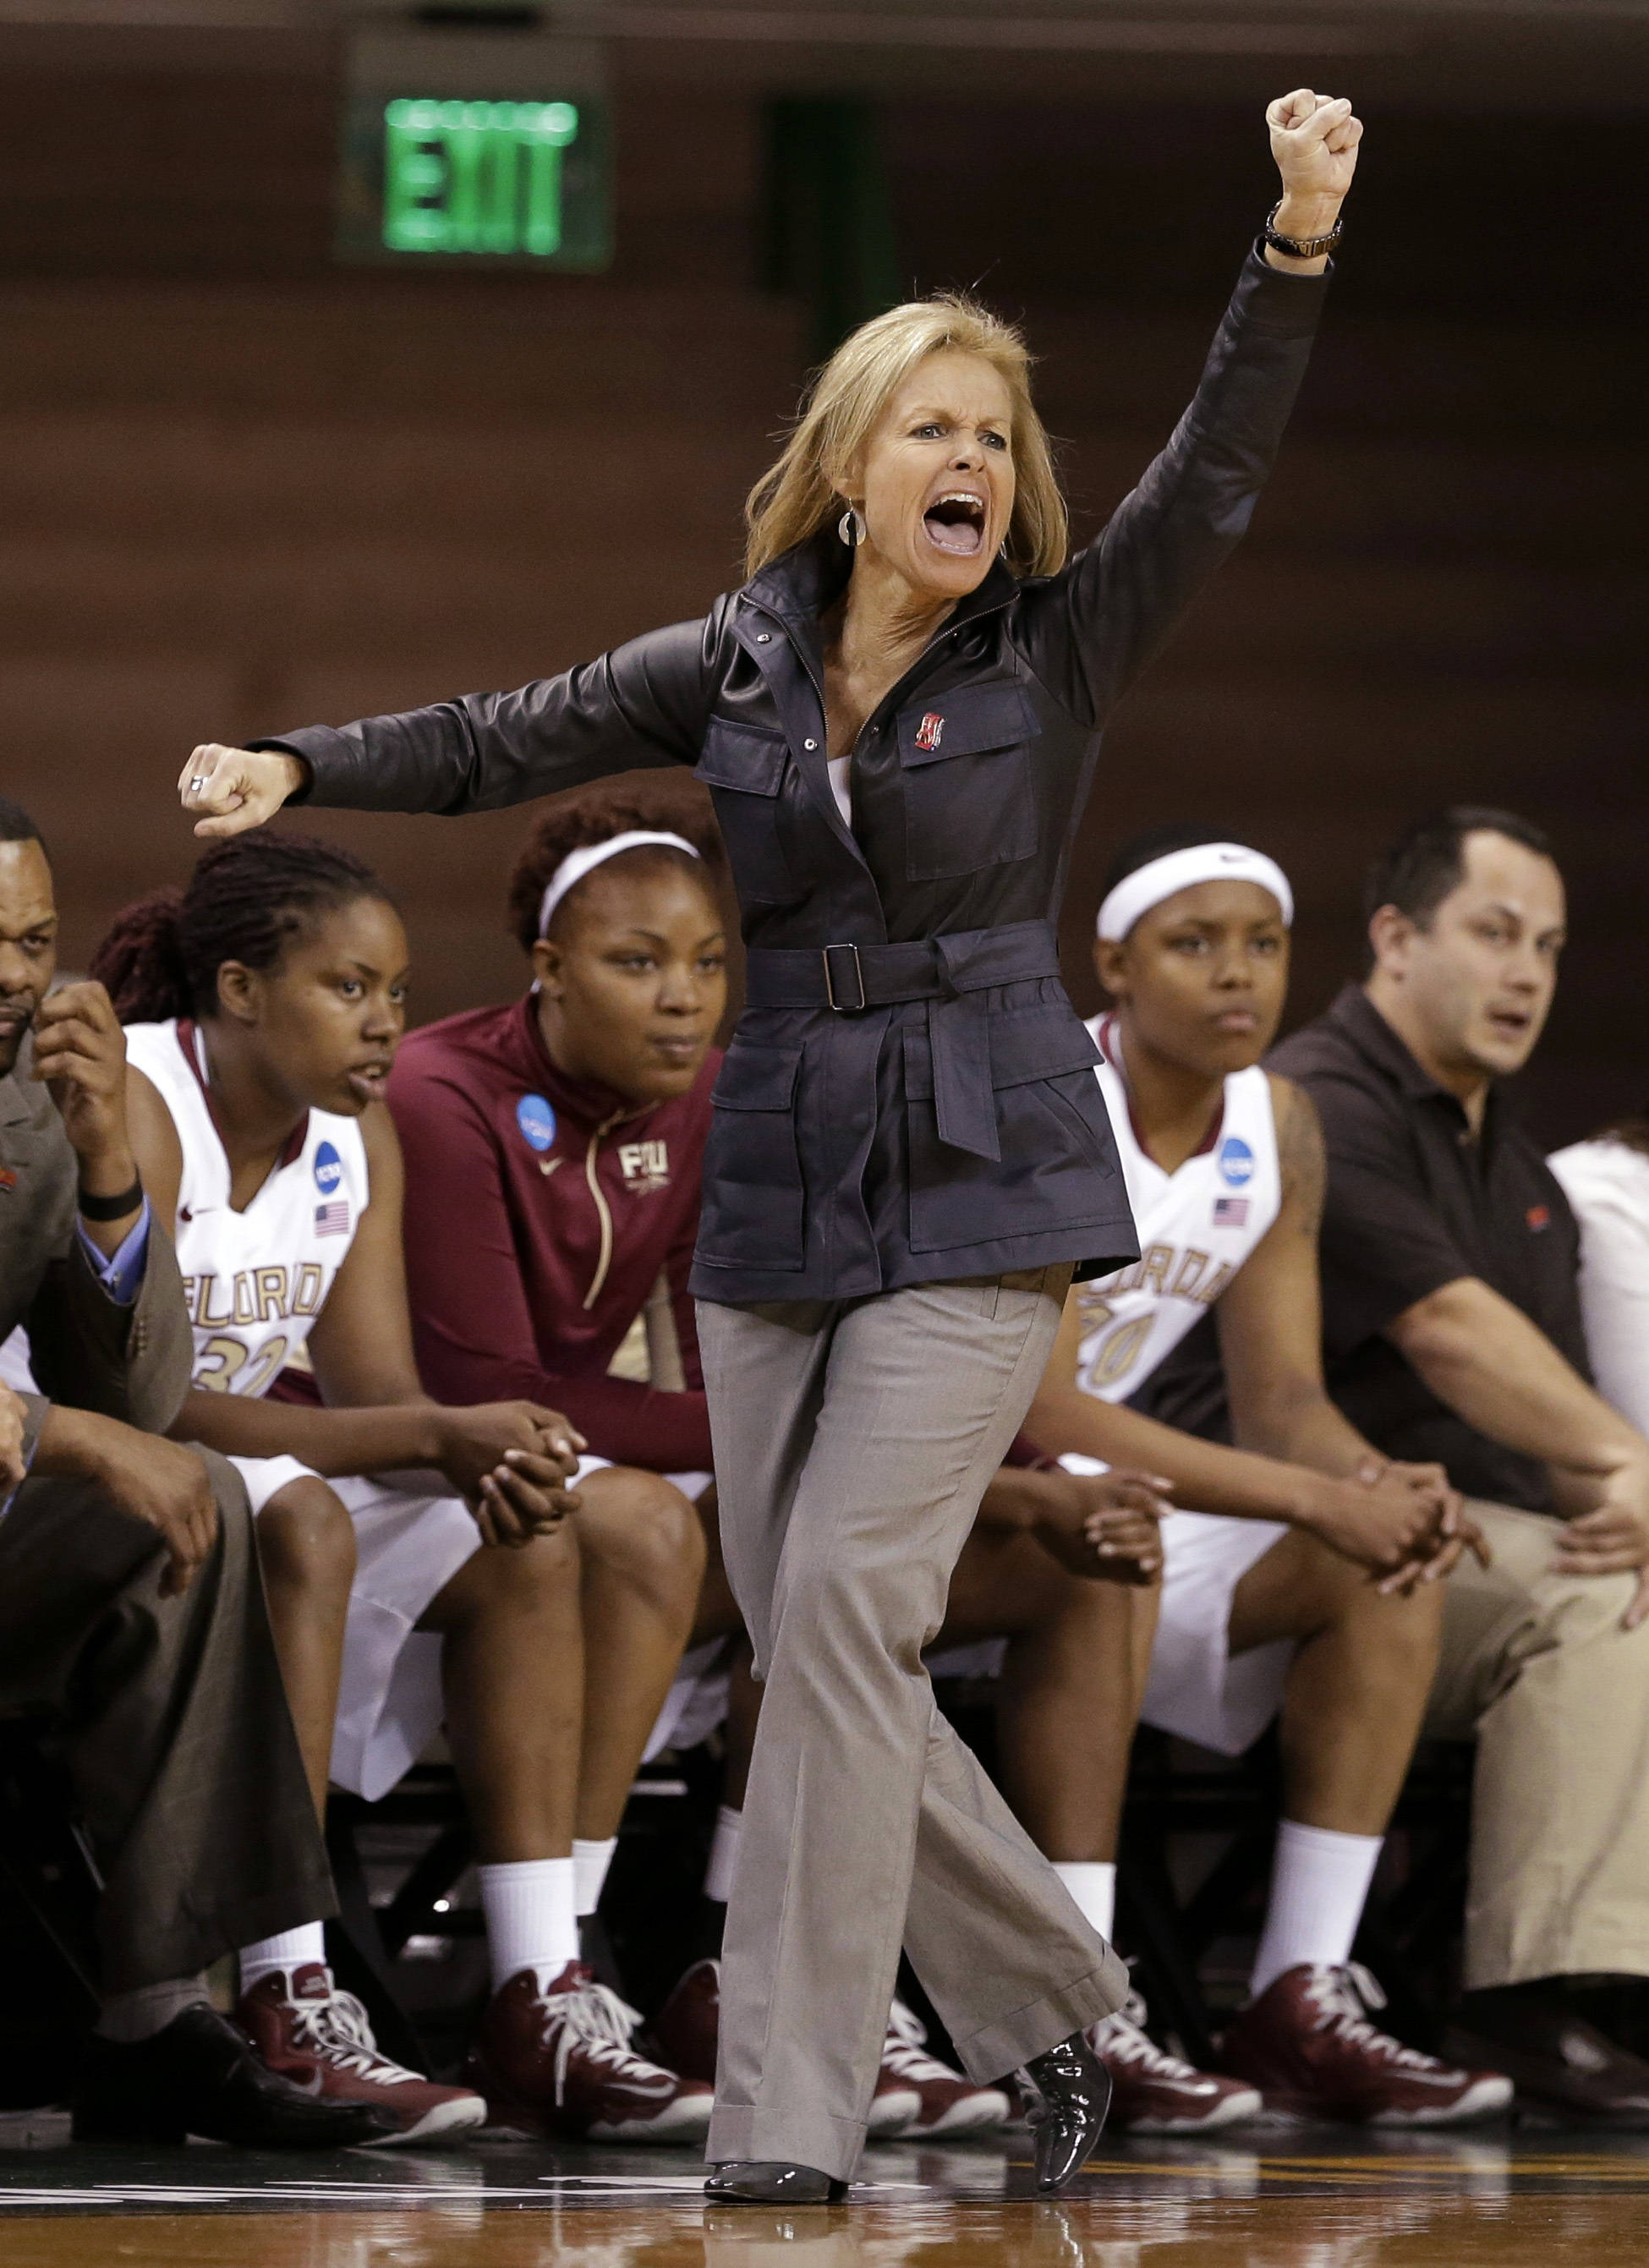 Florida State head coach Sue Semrau  instructs her team. FSU won 60-44. (AP Photo/Tony Gutierrez)